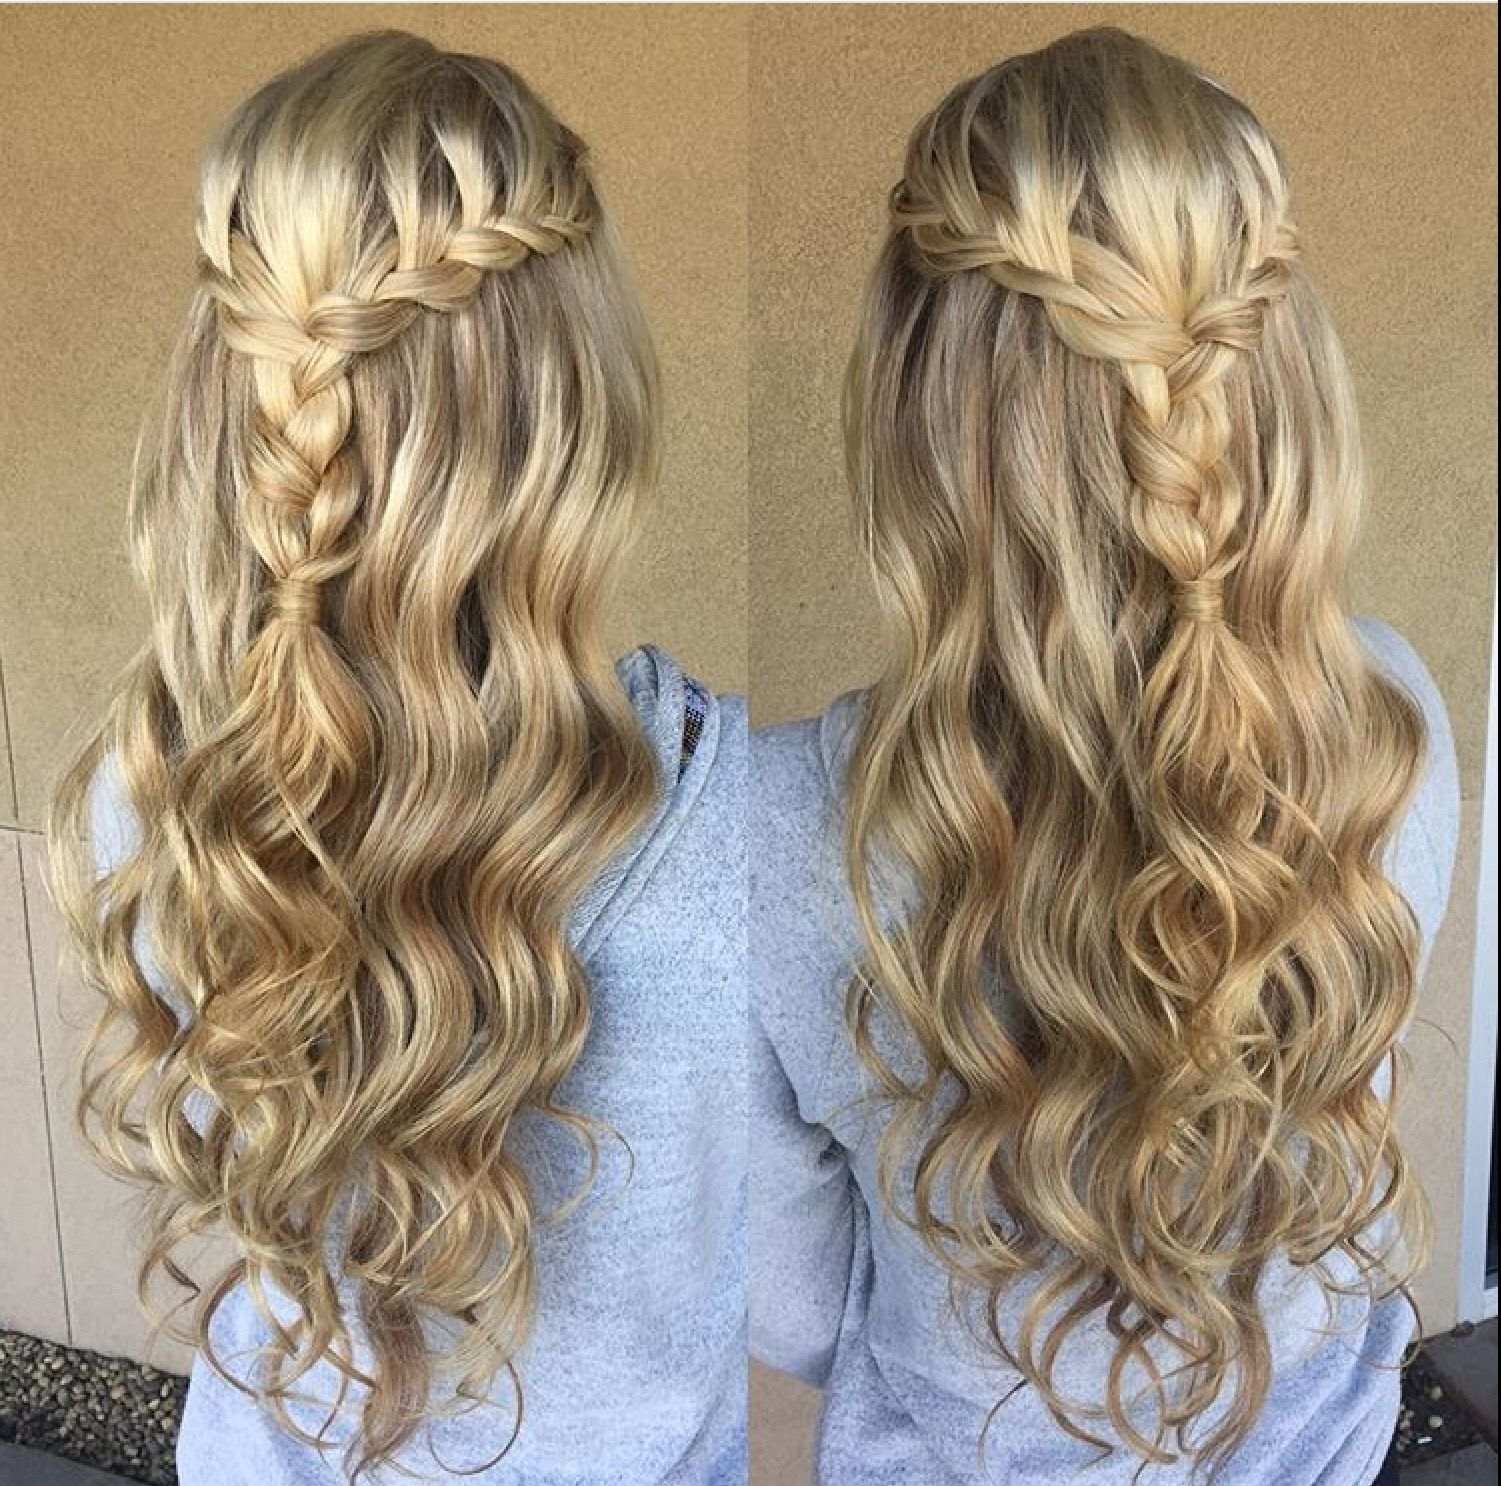 Hairstyles For Long Hair For Formal #formal #hairstyles